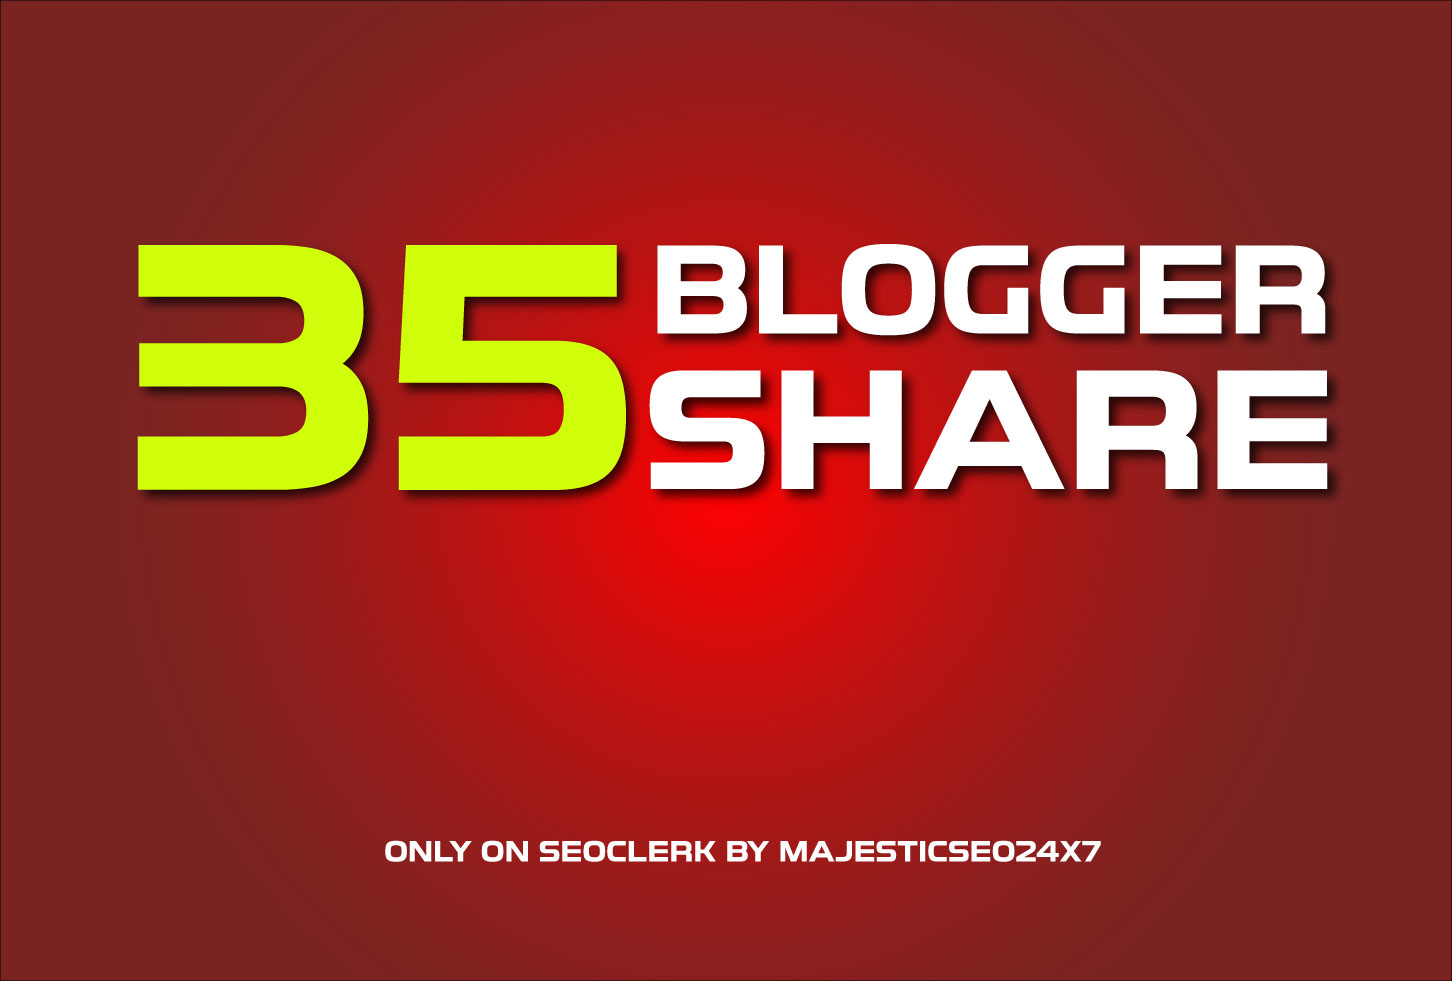 Get You 35 Blogger Shares For Your URL